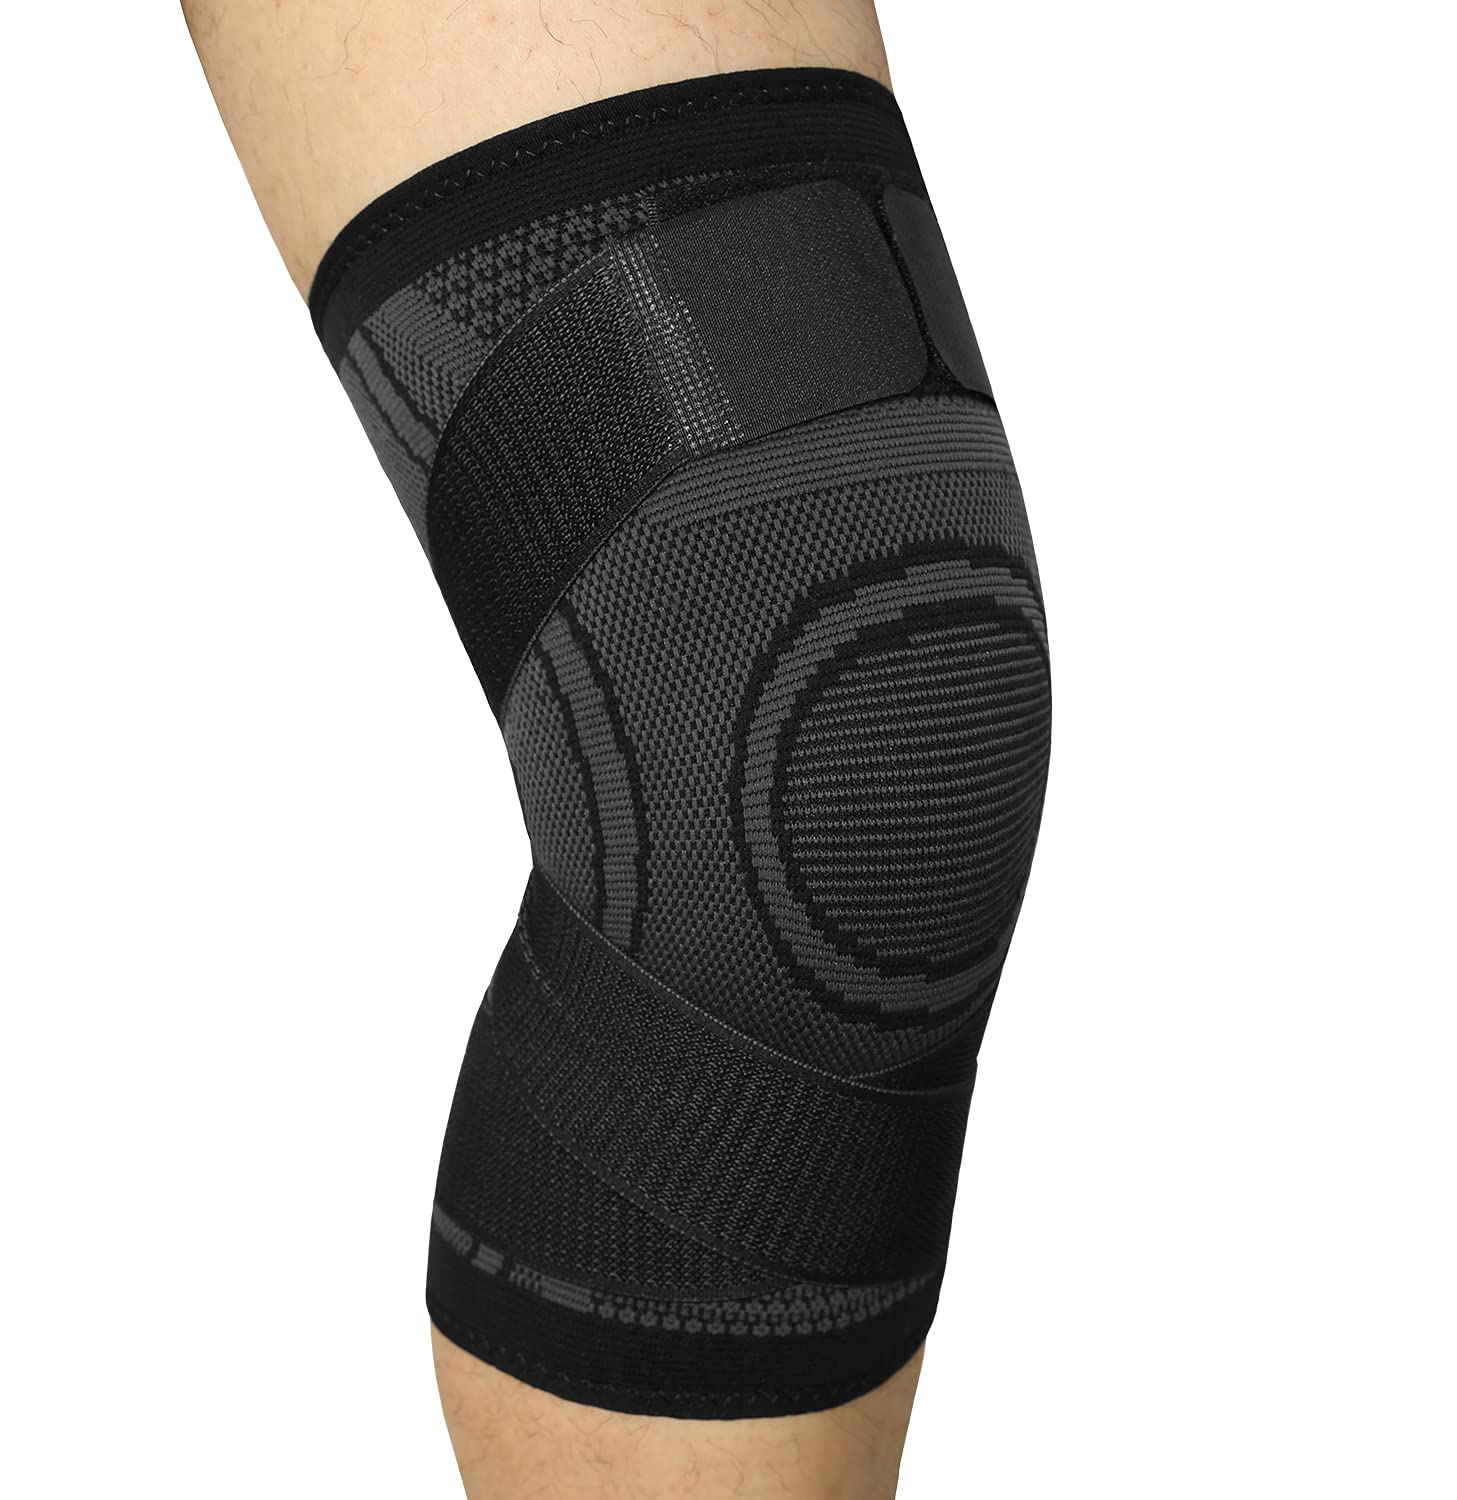 DISHANG Knee Brace for Braces Super beauty product restock Los Angeles Mall quality top Sleeve Pain Compression